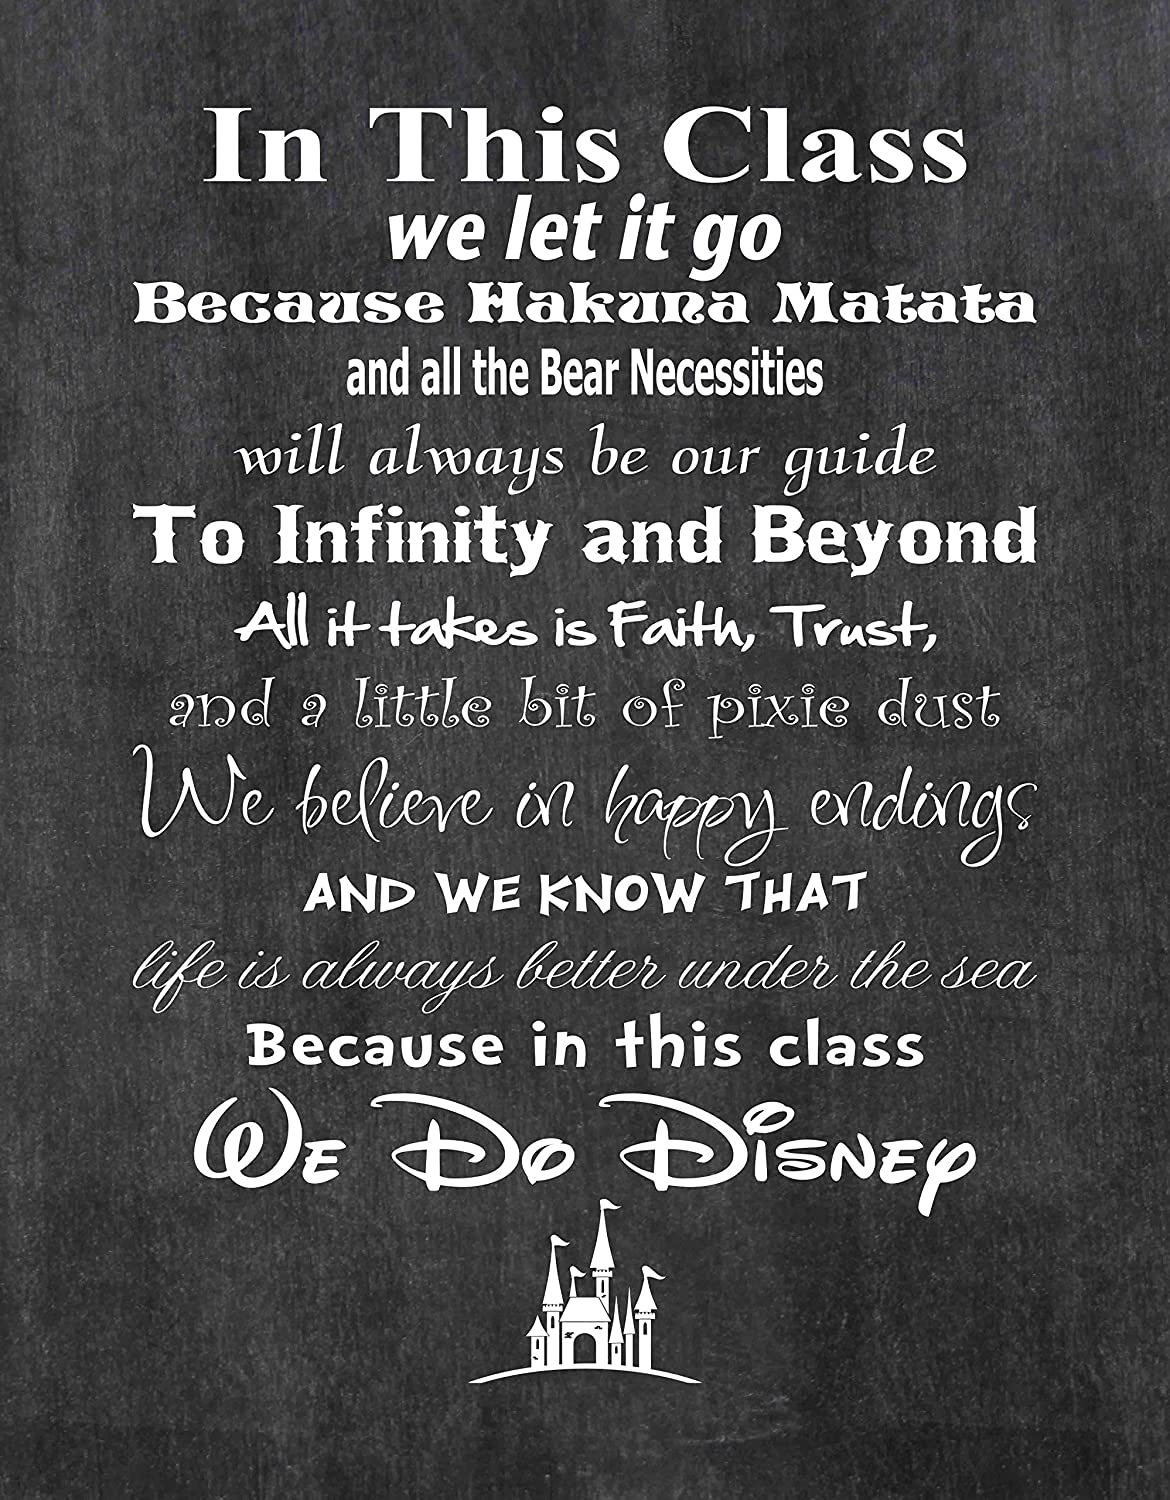 "Simply Remarkable In This Class We Do Disney Art Print. School Teacher Wall Décor Class Rules. USA Made Poster Gifts for Educators, Principals, Coaches. Decorate Classroom or Office. (8"" x 10"")"